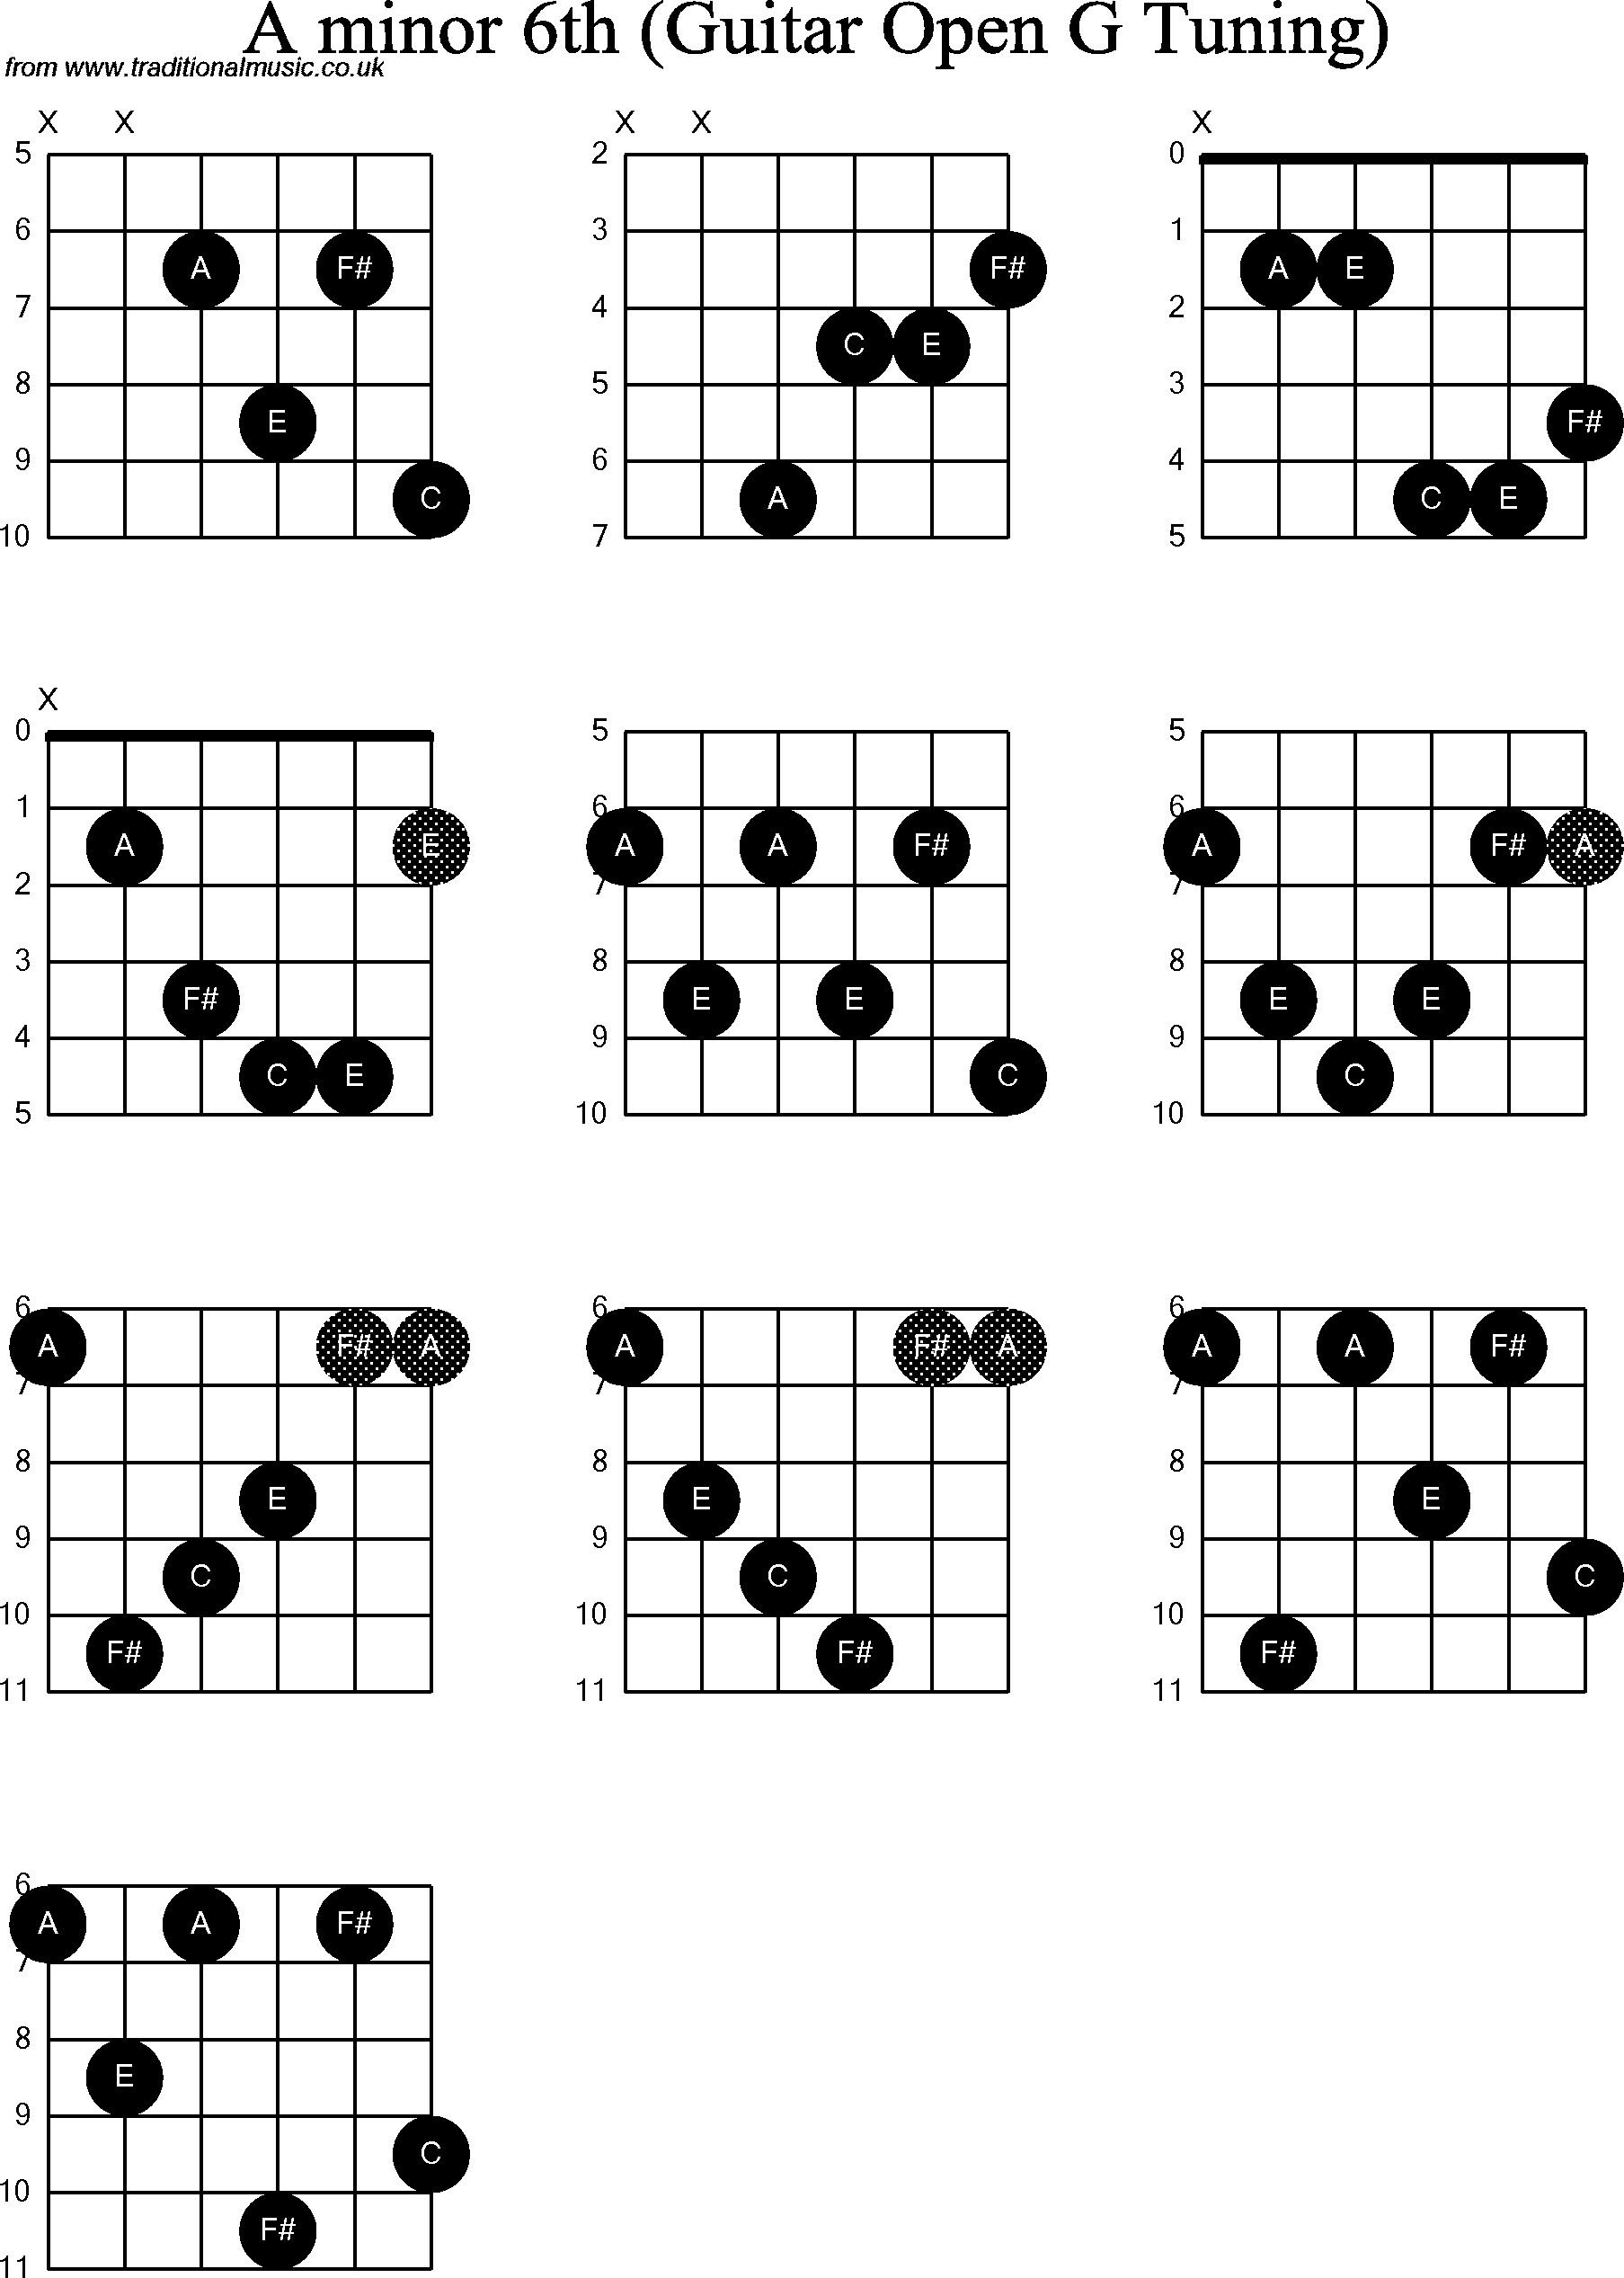 chord diagrams for  dobro a minor6th